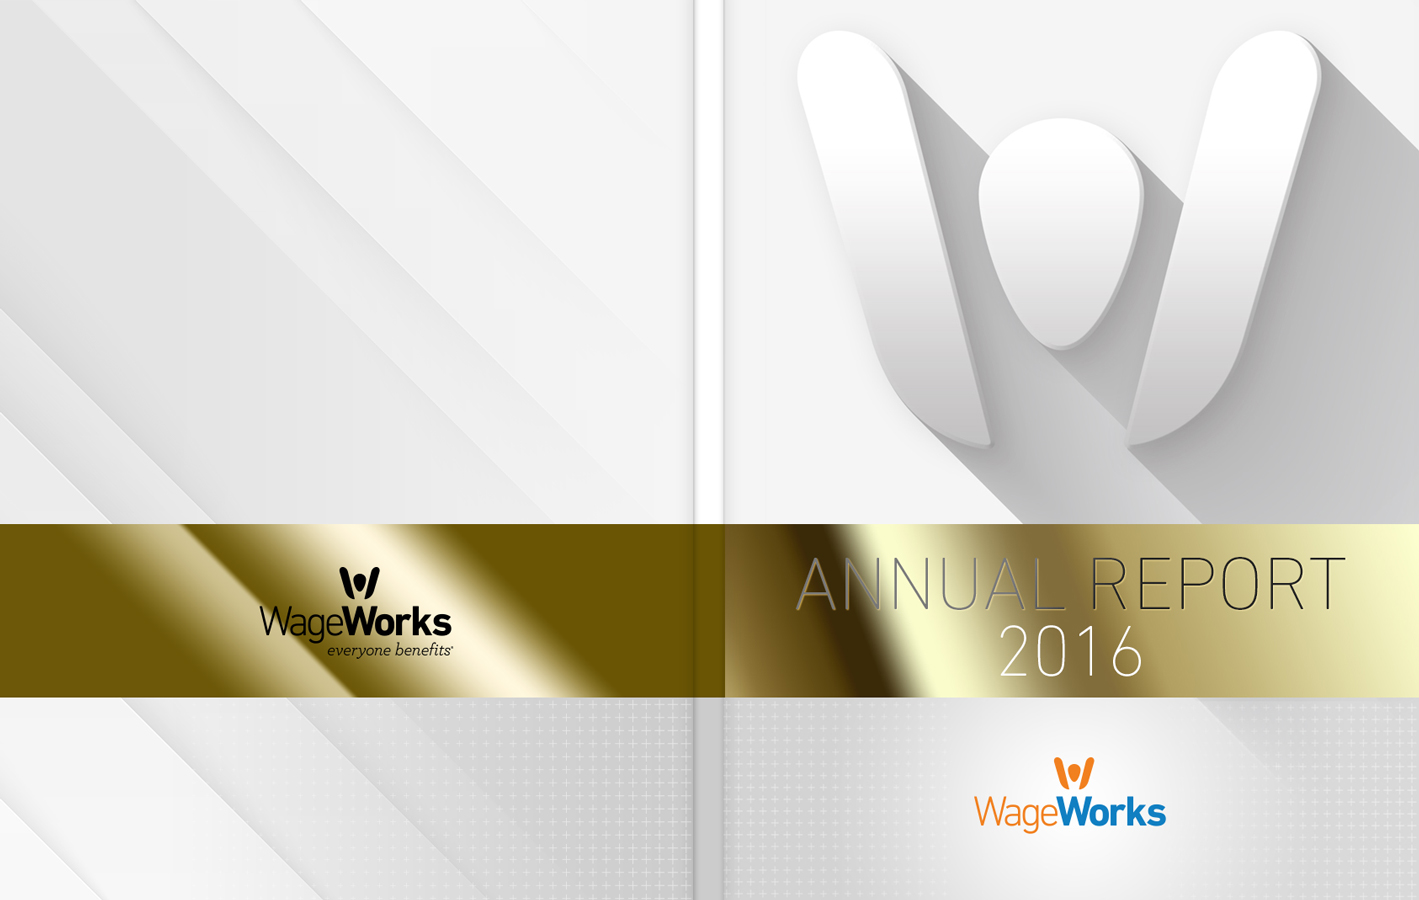 WageWorks Annual Report Cover Design